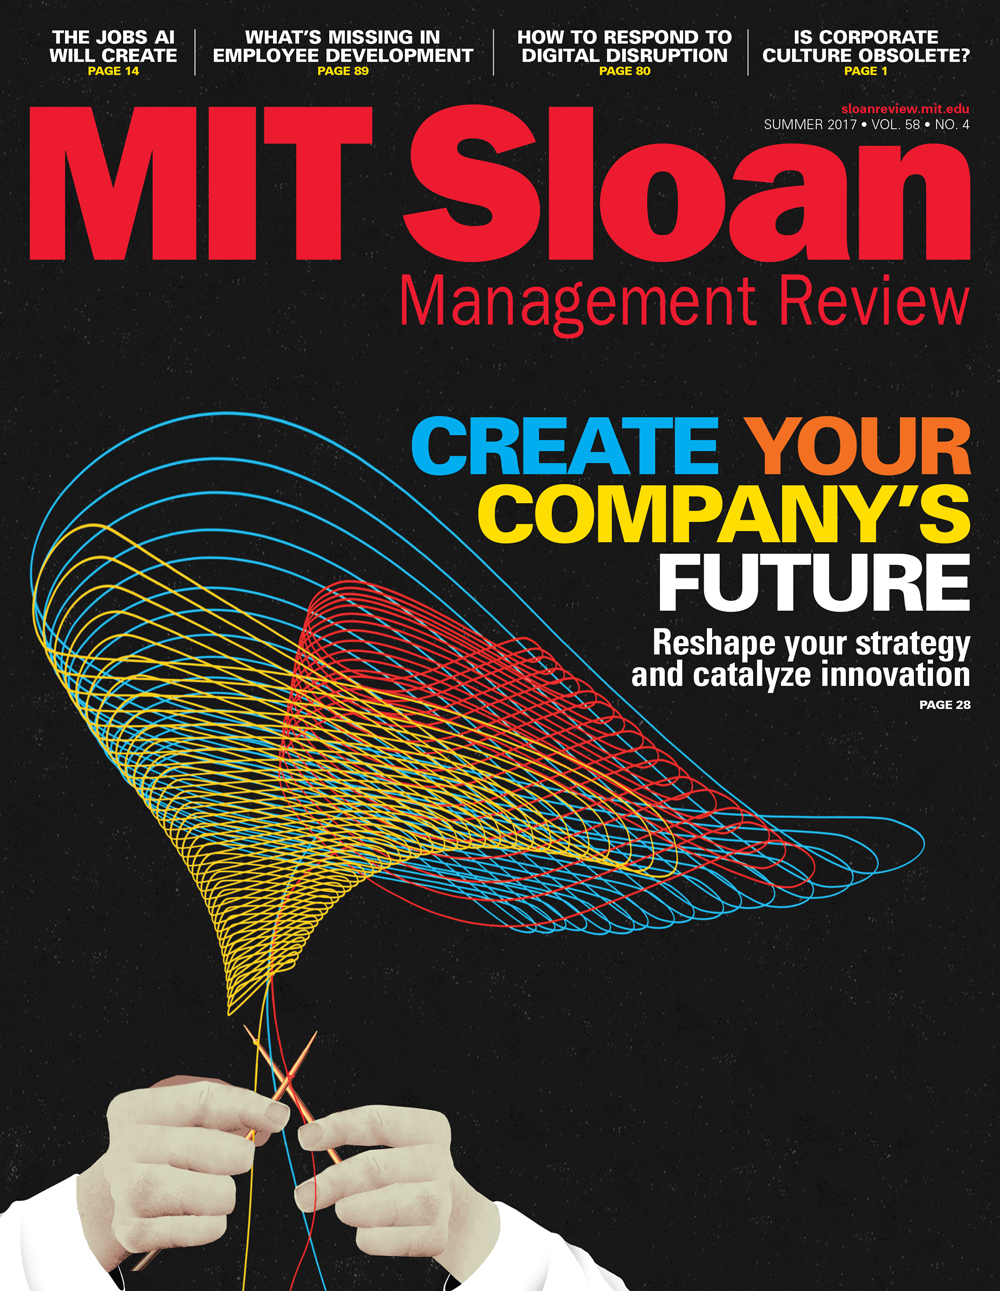 The best response to digital disruption (MIT Sloan)